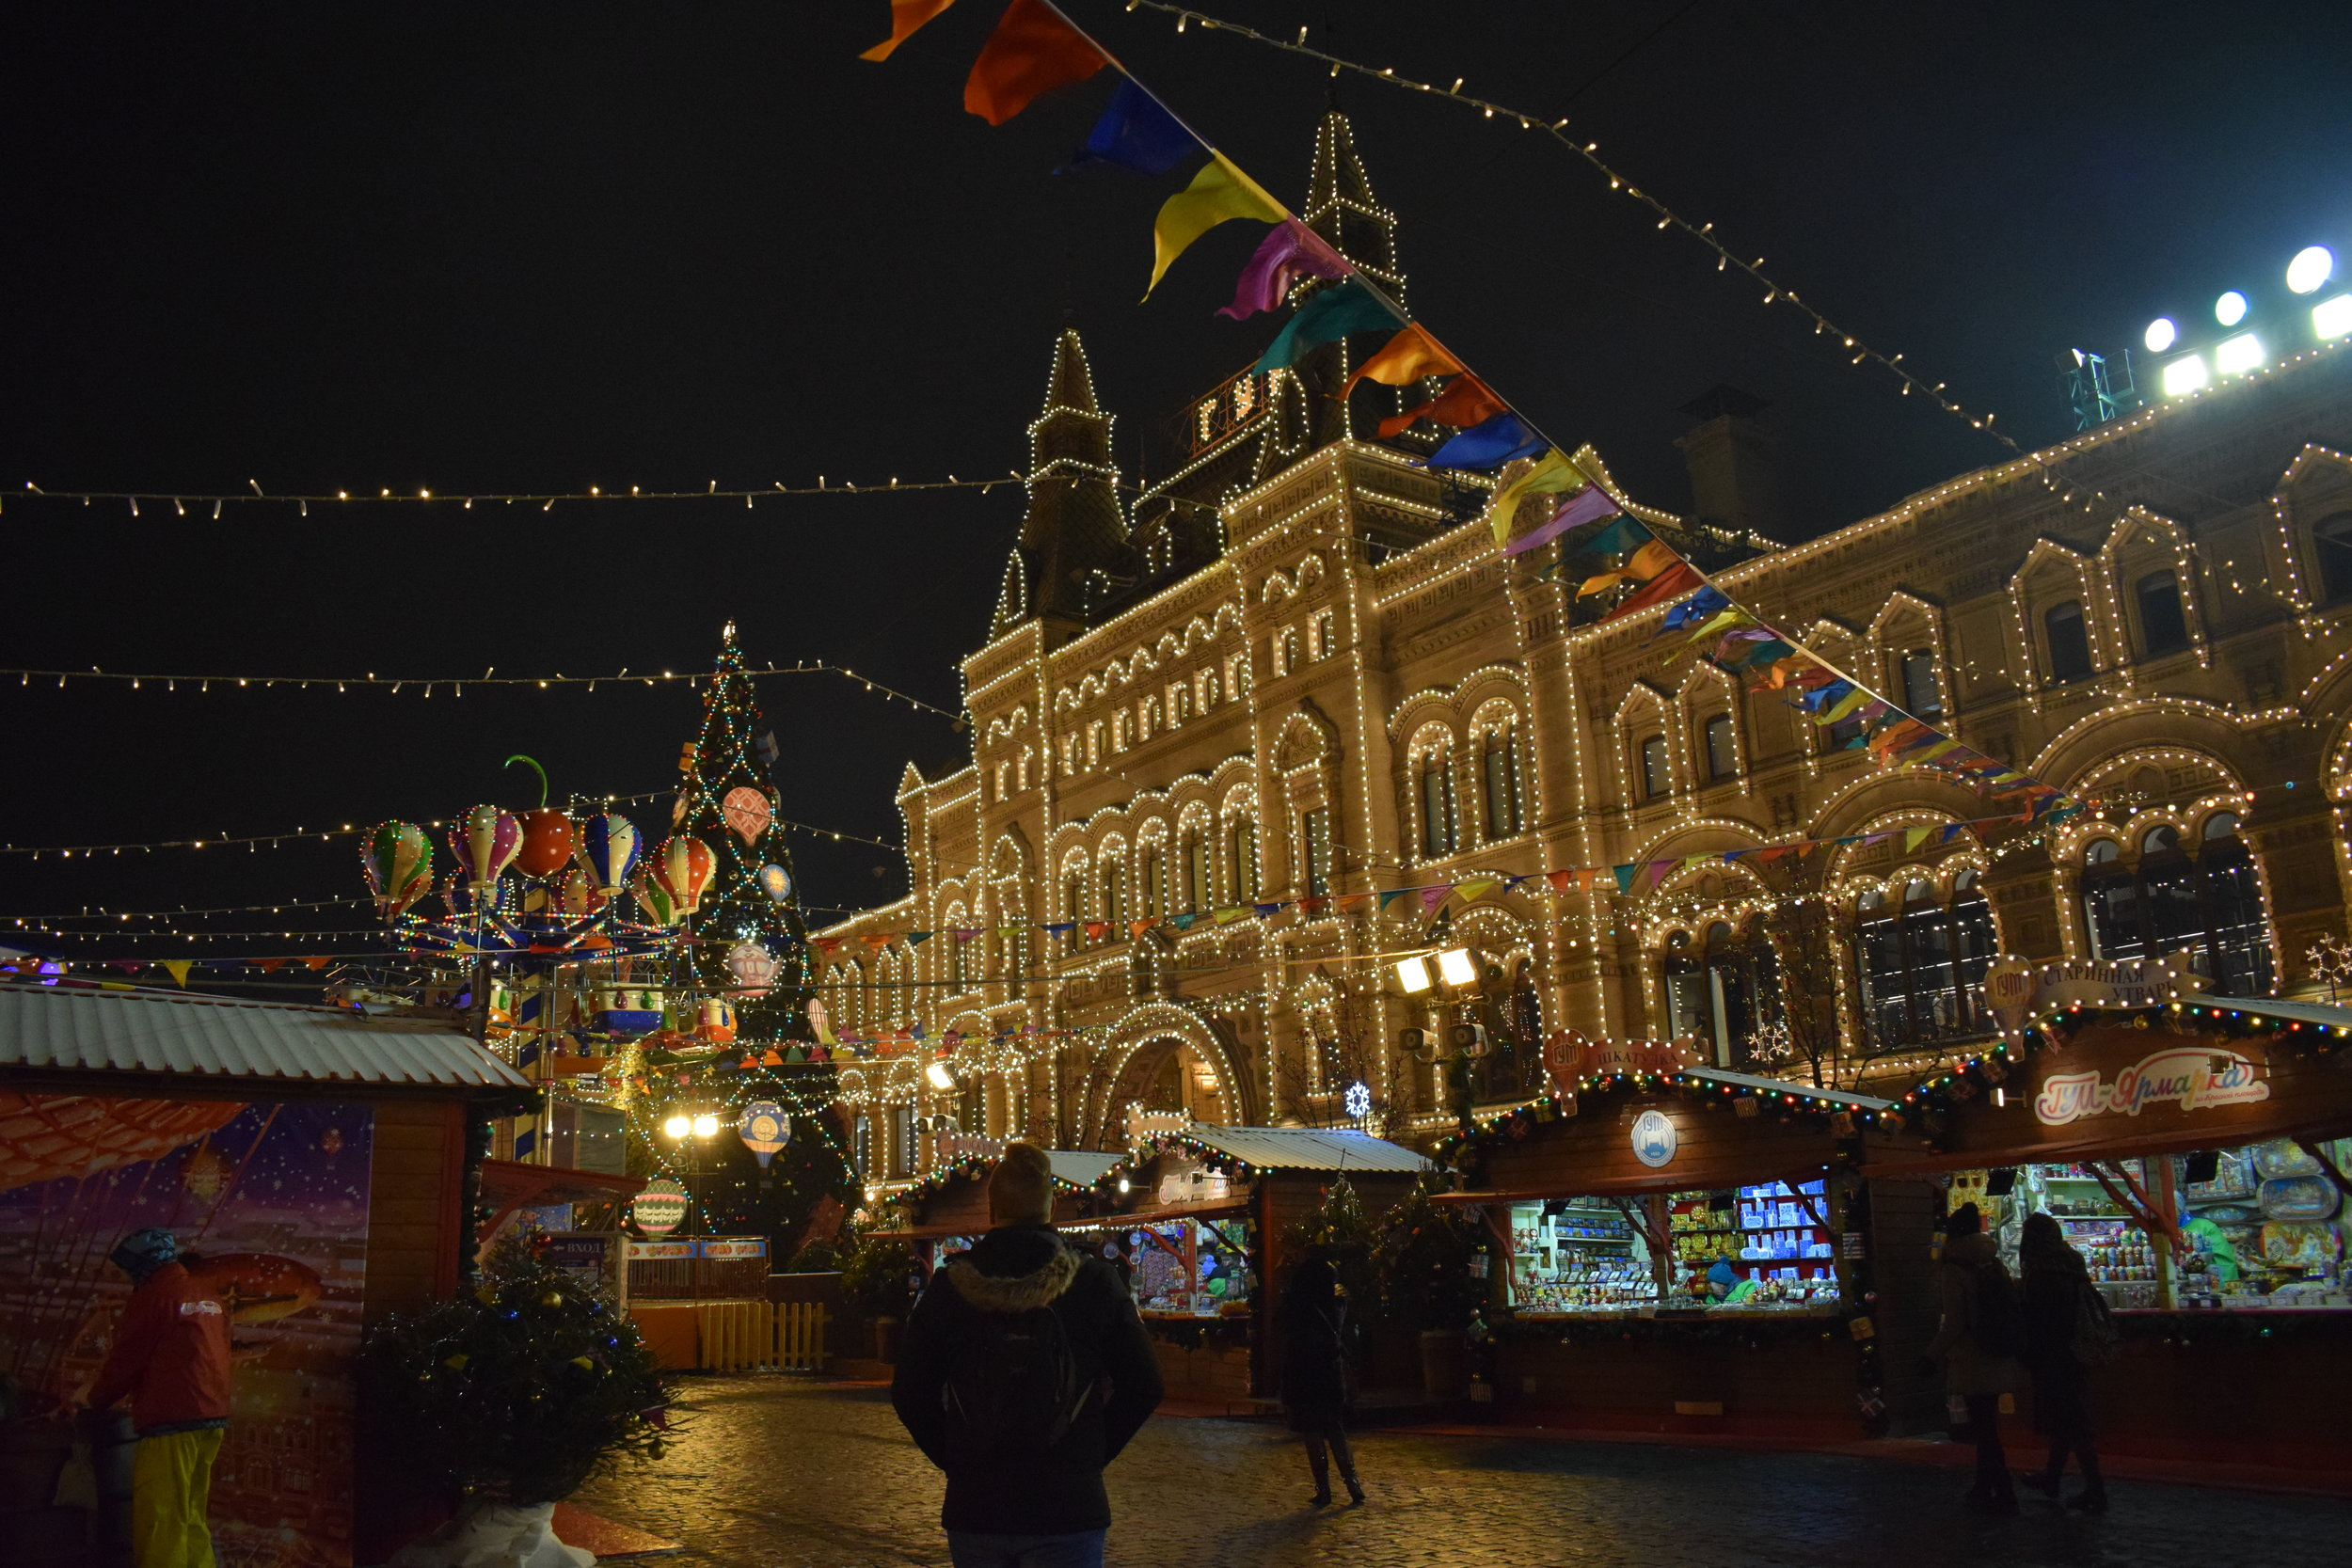 GUM shopping centre overlooks Red Square Christmas Market.